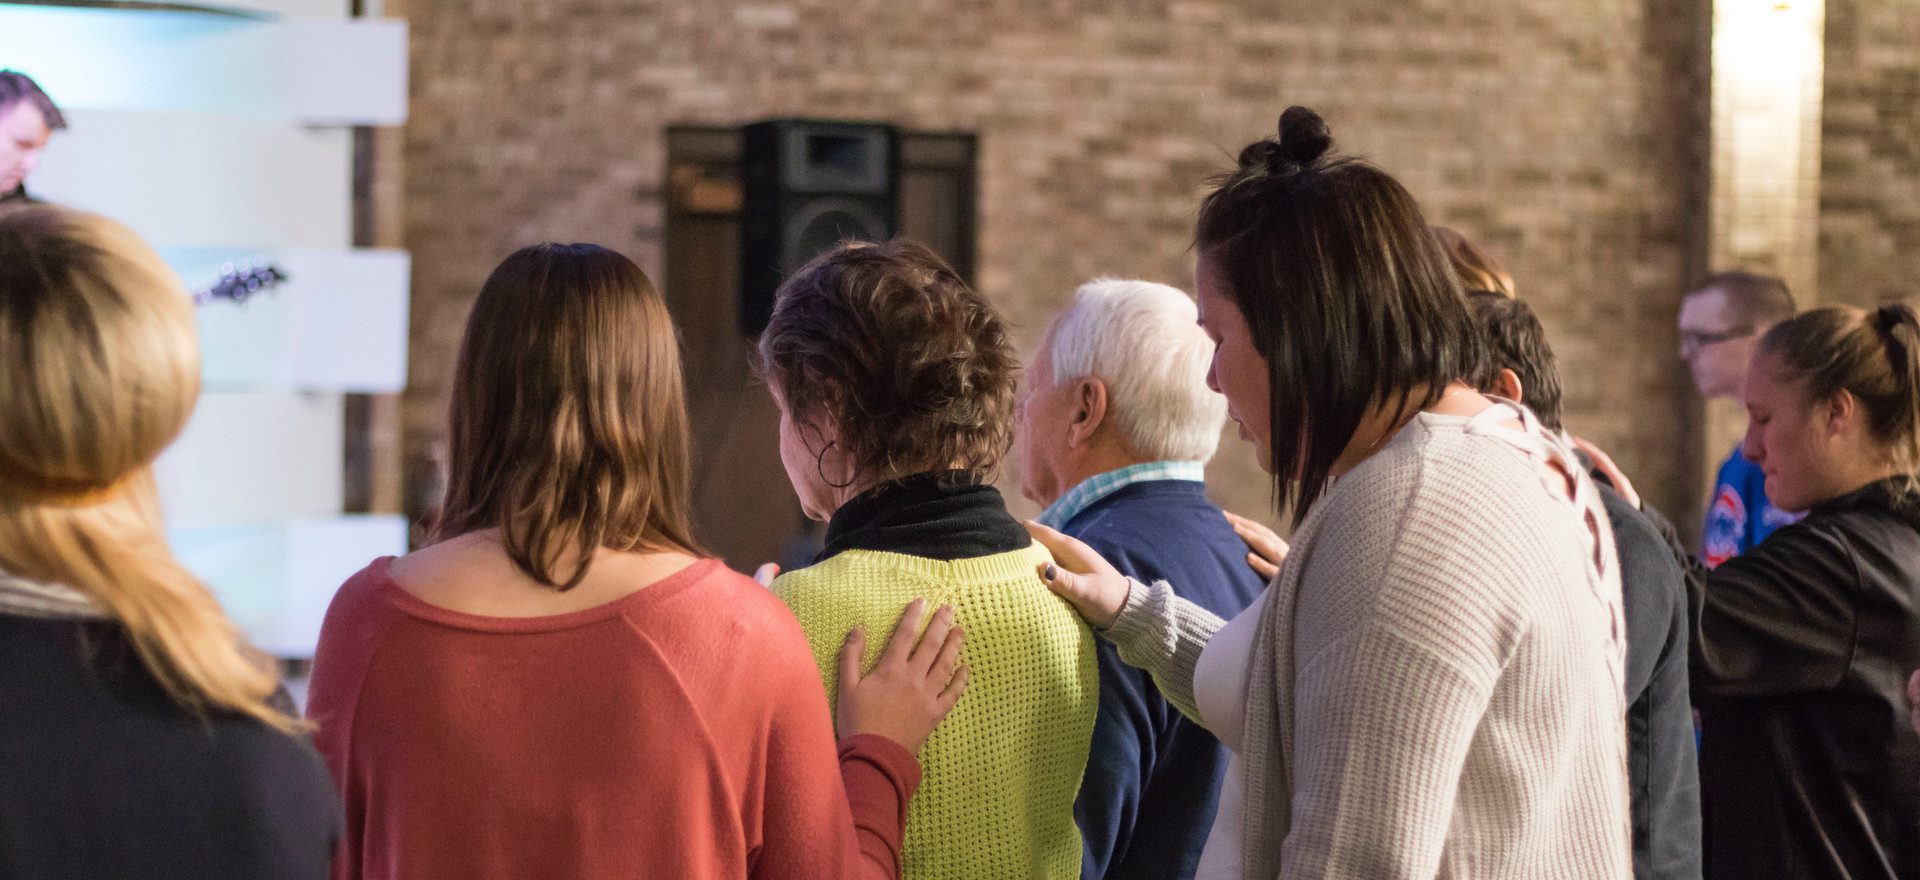 Hannah praying over someone during a worship service.